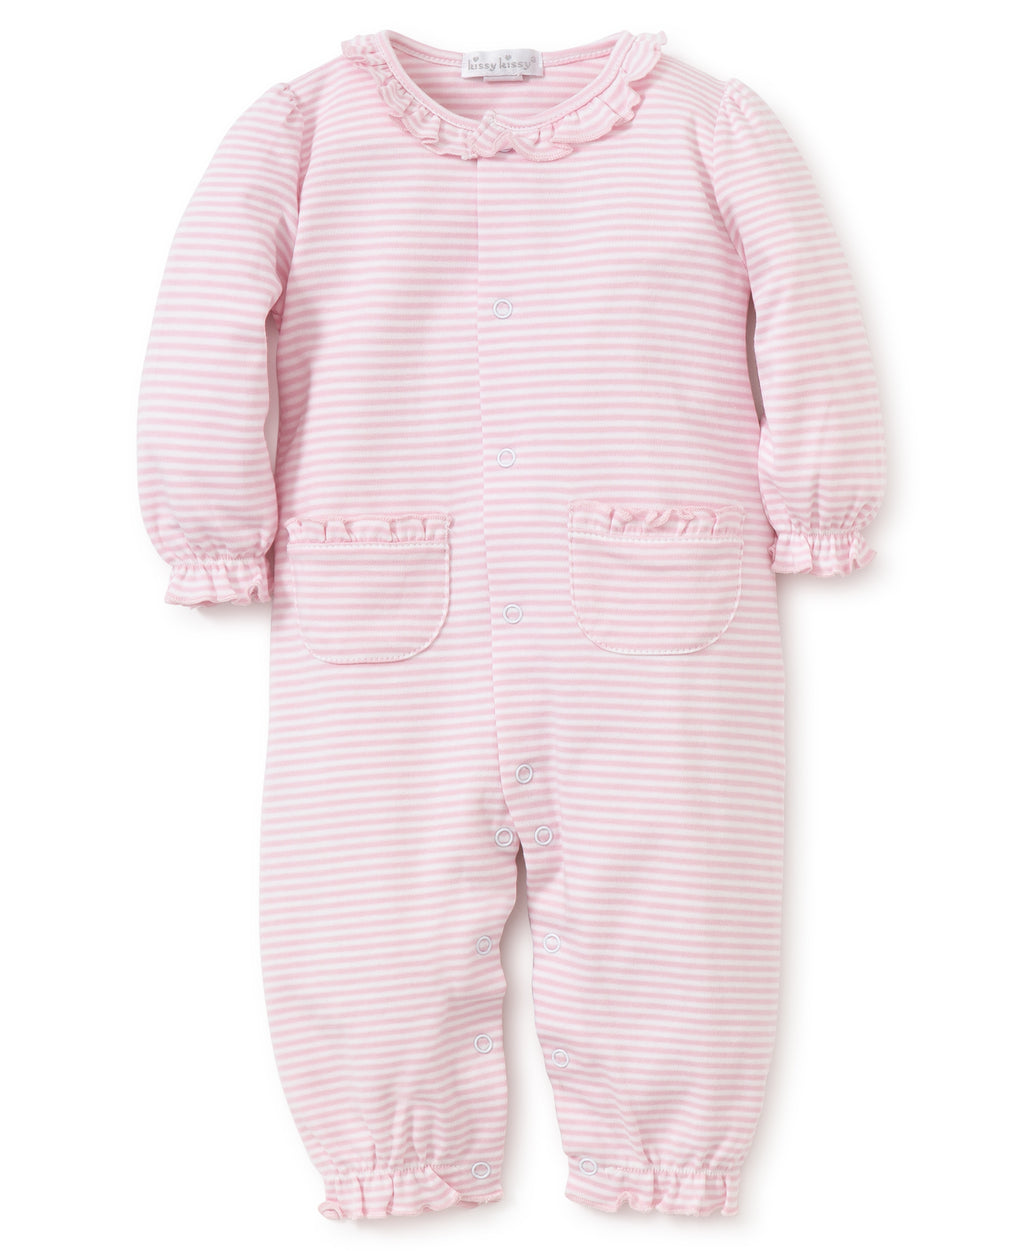 Kissy Kissy Girl's Simple Stripes Playsuit